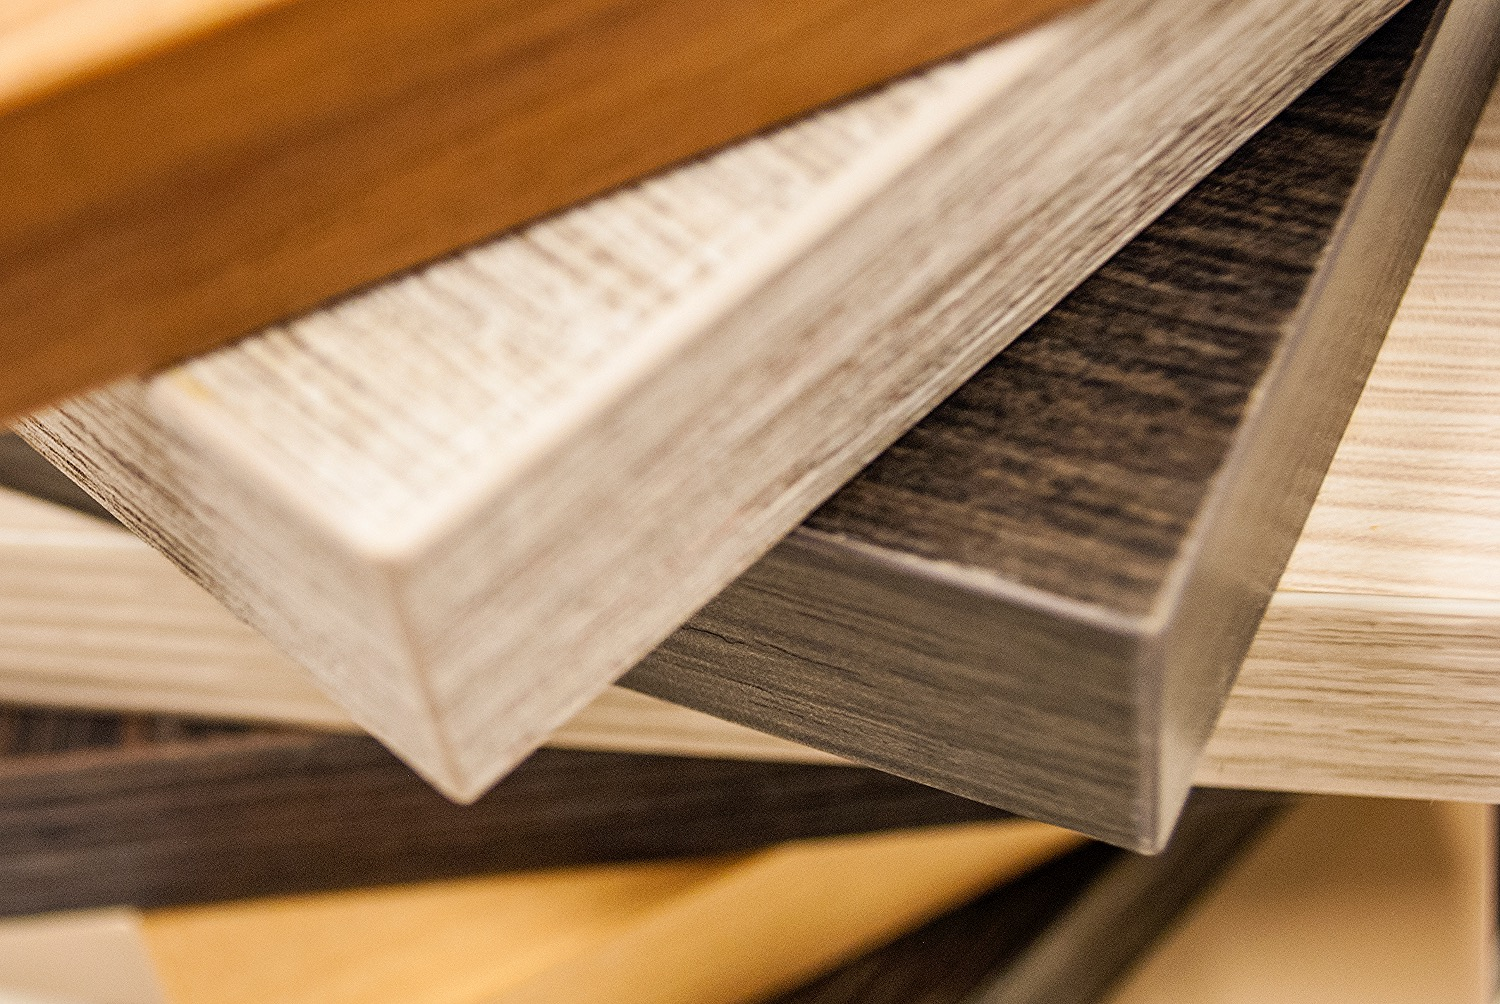 Cabinetry Materials